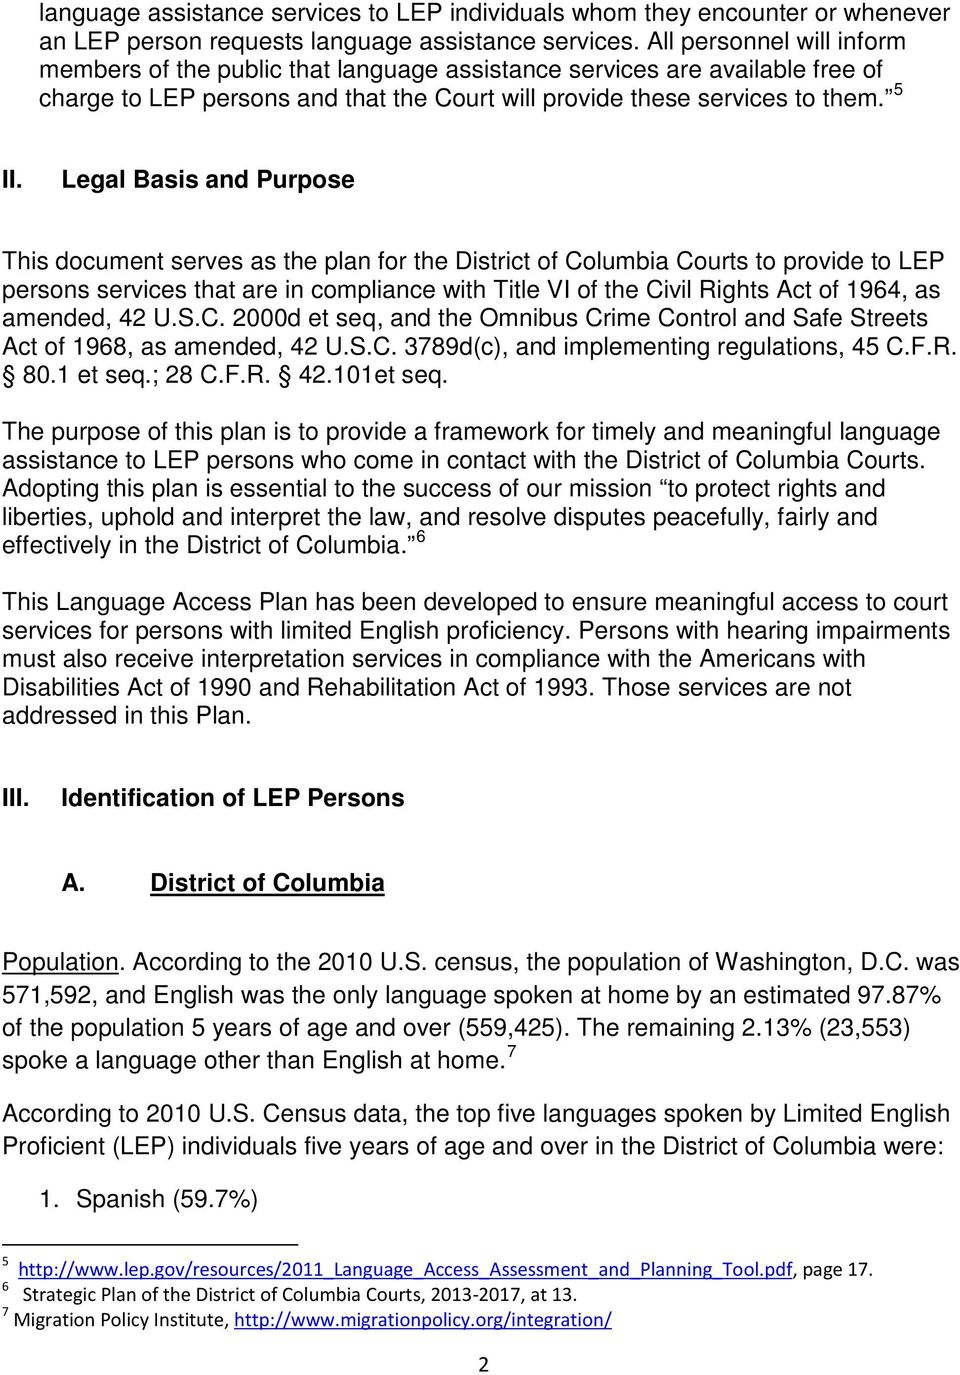 Legal Basis and Purpose This document serves as the plan for the District of Columbia Courts to provide to LEP persons services that are in compliance with Title VI of the Civil Rights Act of 1964,